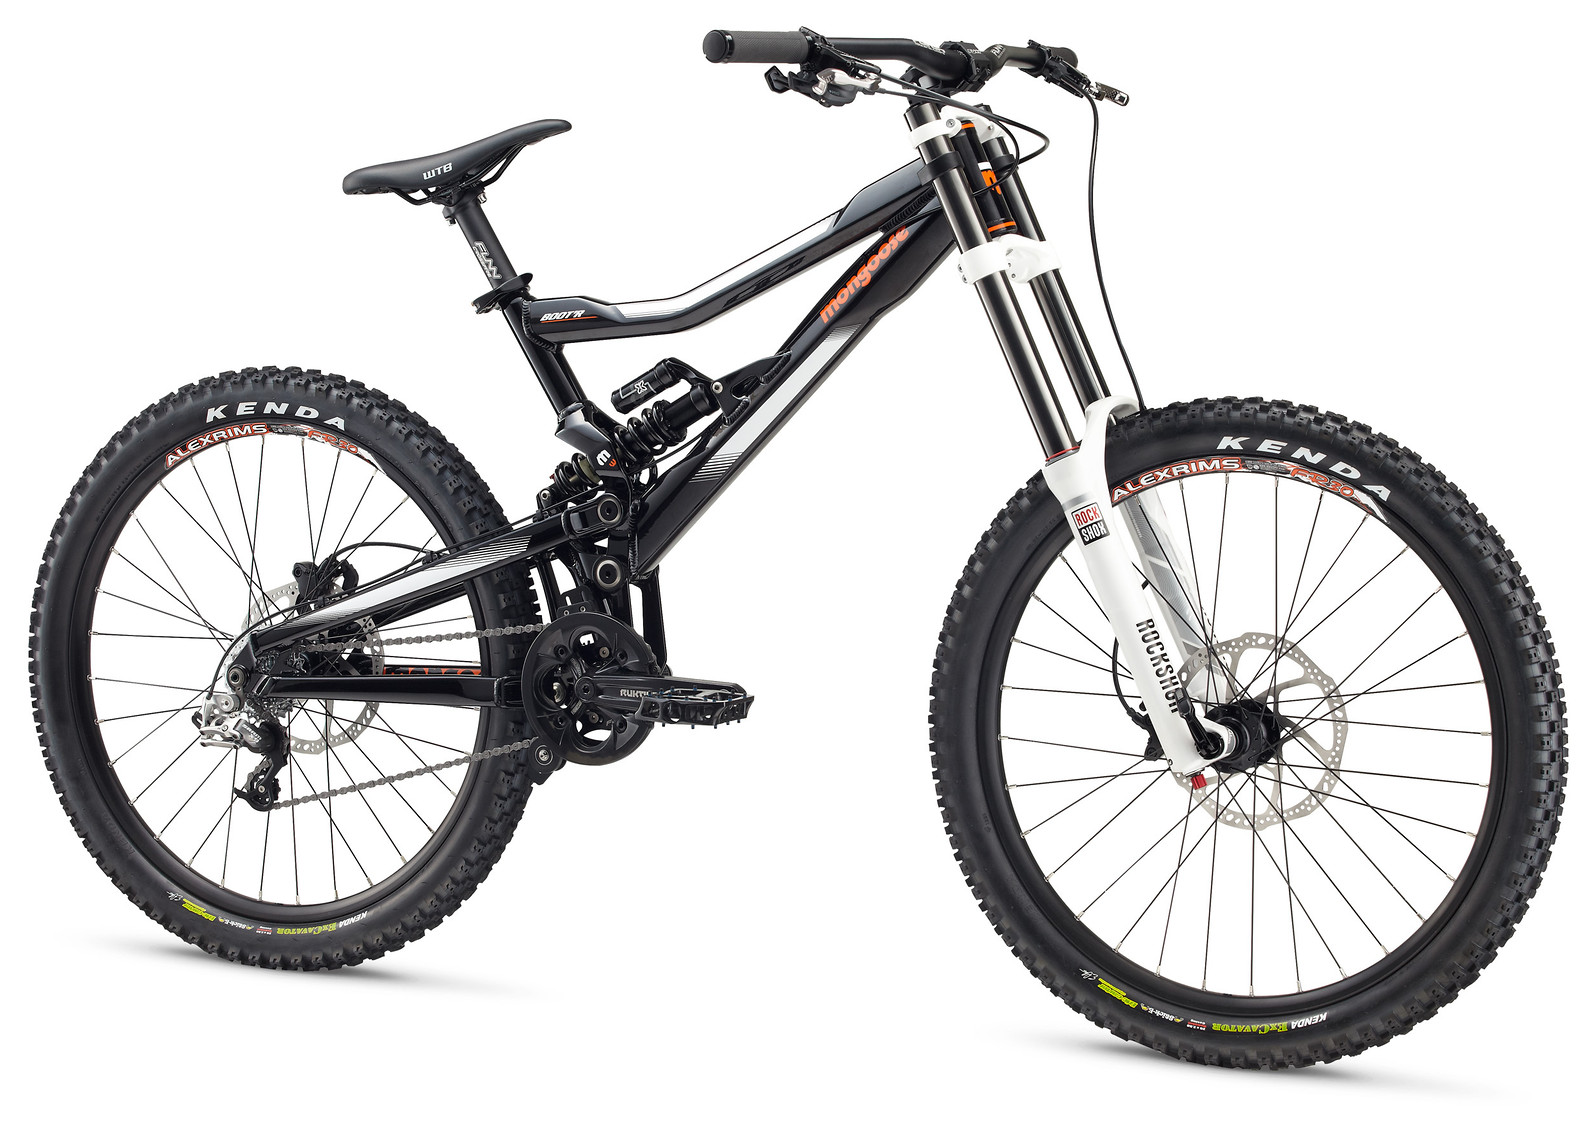 2014 Mongoose Boot'r Bike bike - 2014 Mongoose Boot'r